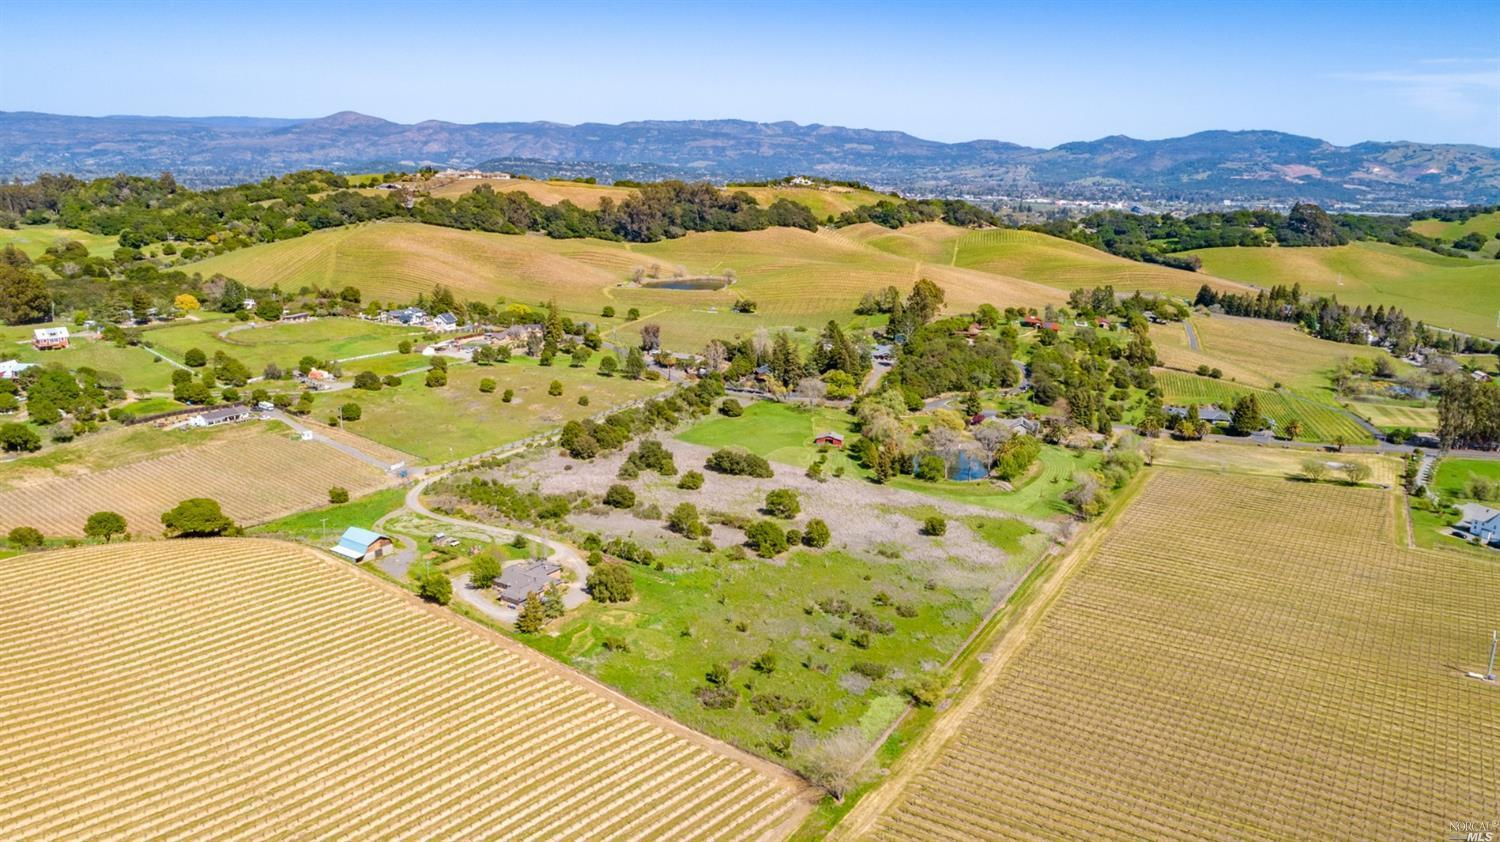 9 Acre Dream lot 10 minutes from downtown Napa Valley. Amazing opportunity to build your Dream Home